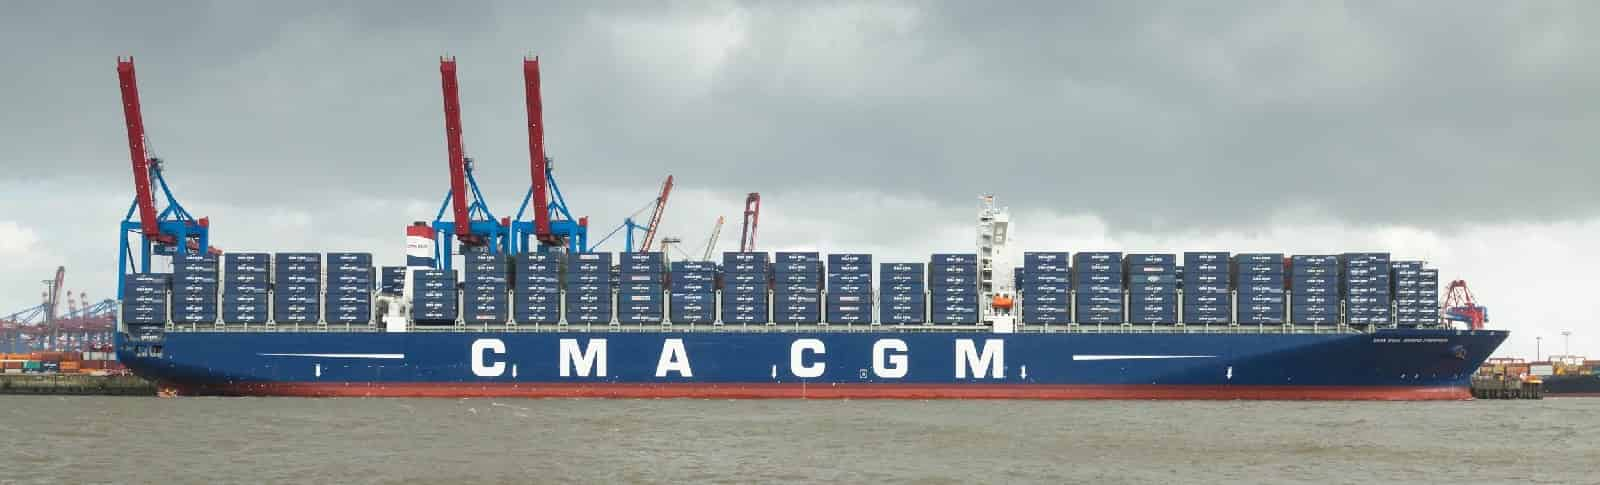 CMA CGM GEORG FORSTER, CMA CGM Group's largest vessel, christened in Hamburg